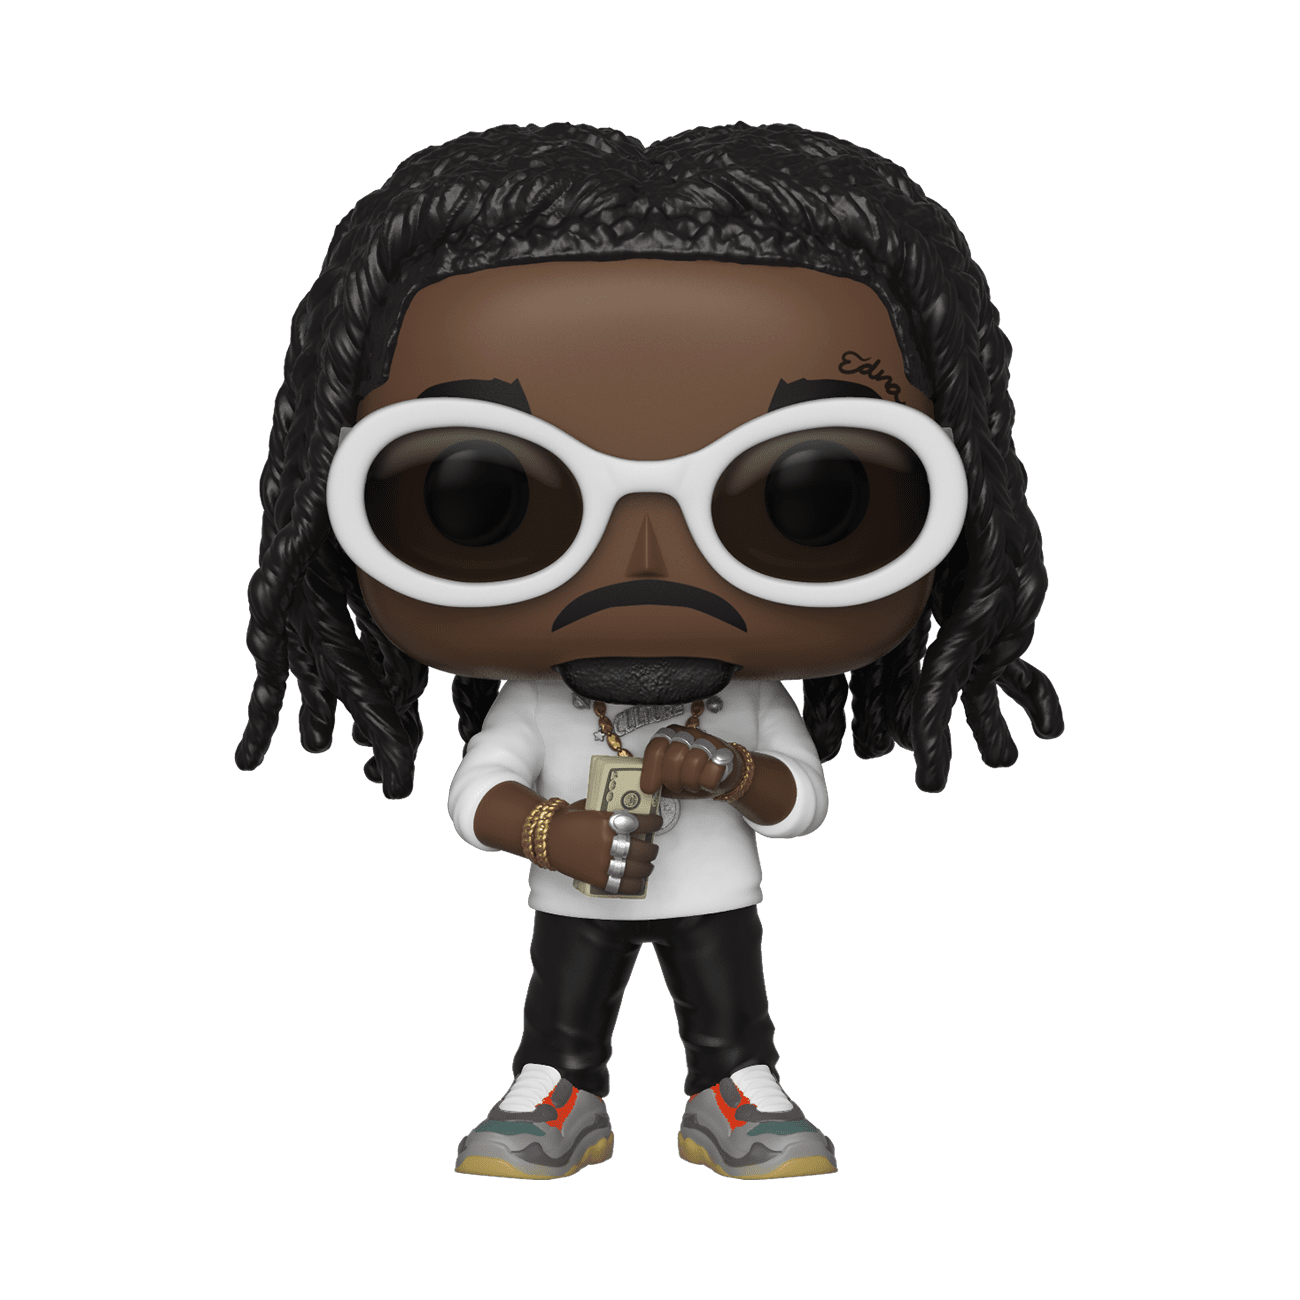 37855_MIGOS_Takeoff_POP_GLAM_Front-WEB-a16027e9eb89704bc39b32bf51d8faa3.png